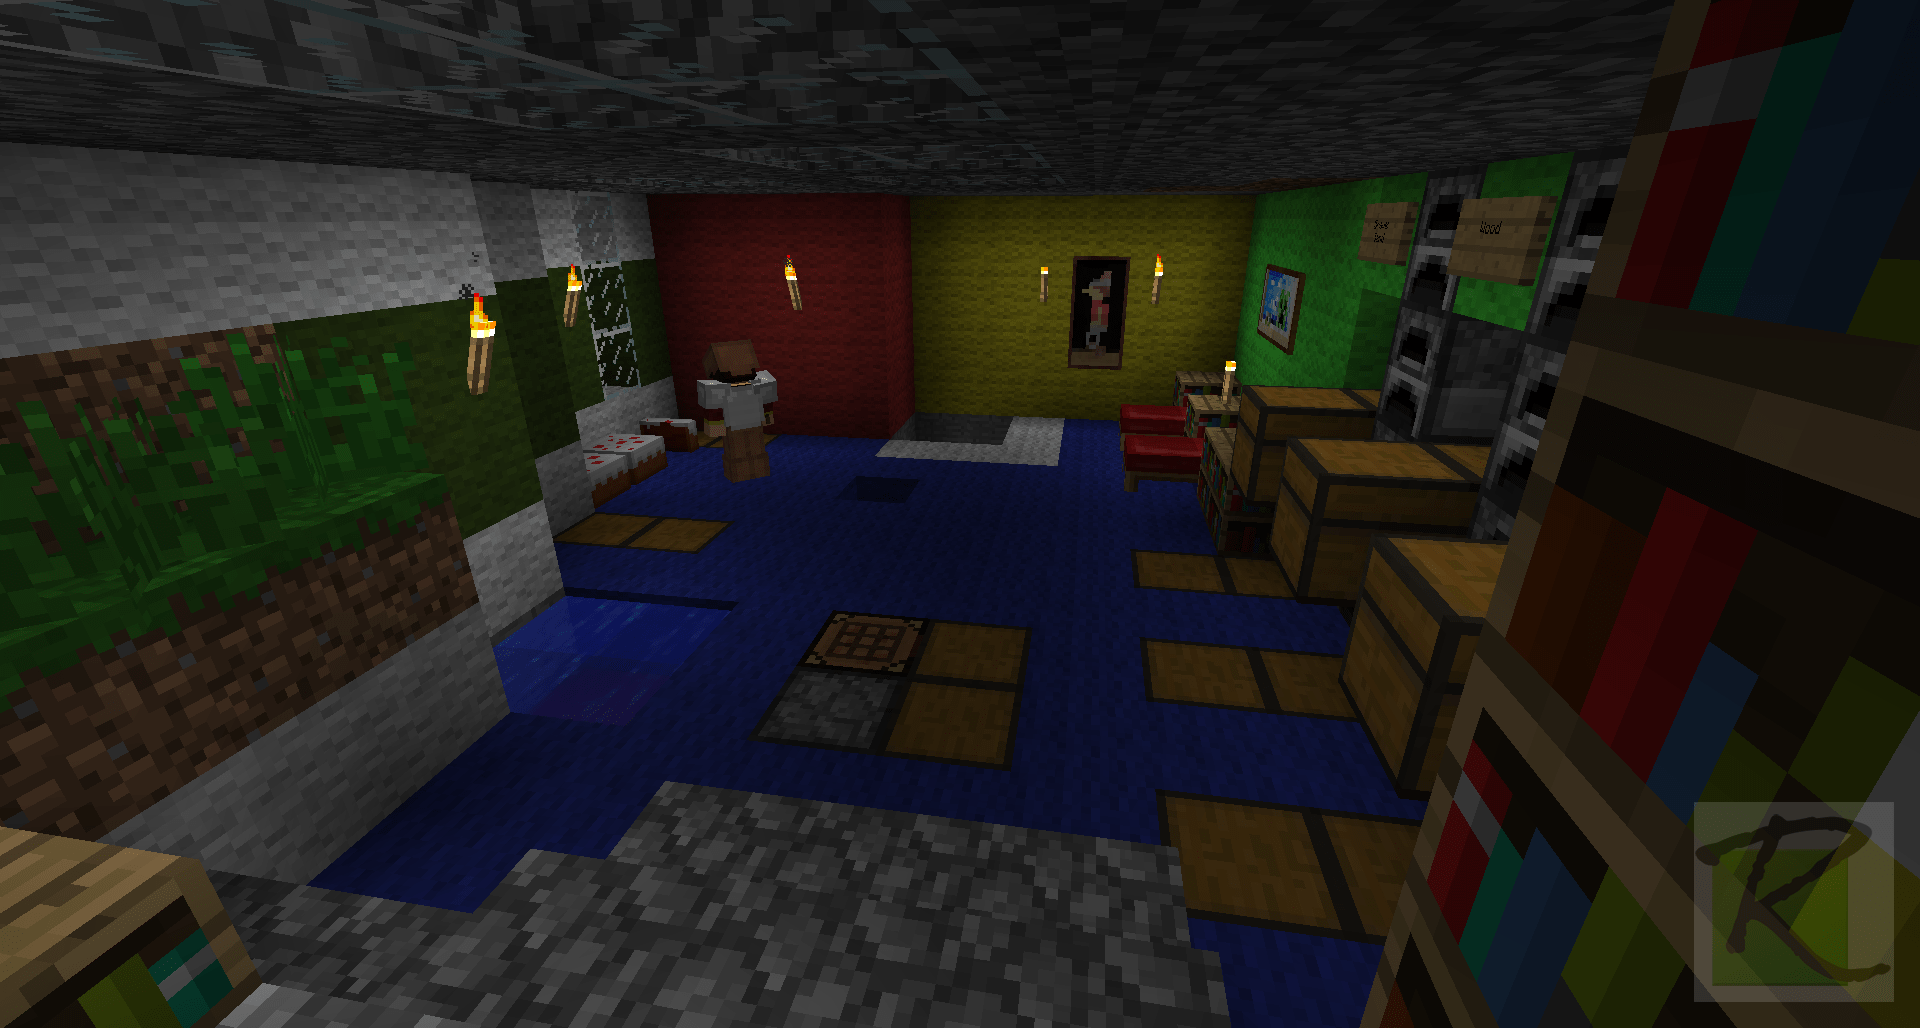 Minecraft interior design cool minecraft interior design for Cool house decorating ideas